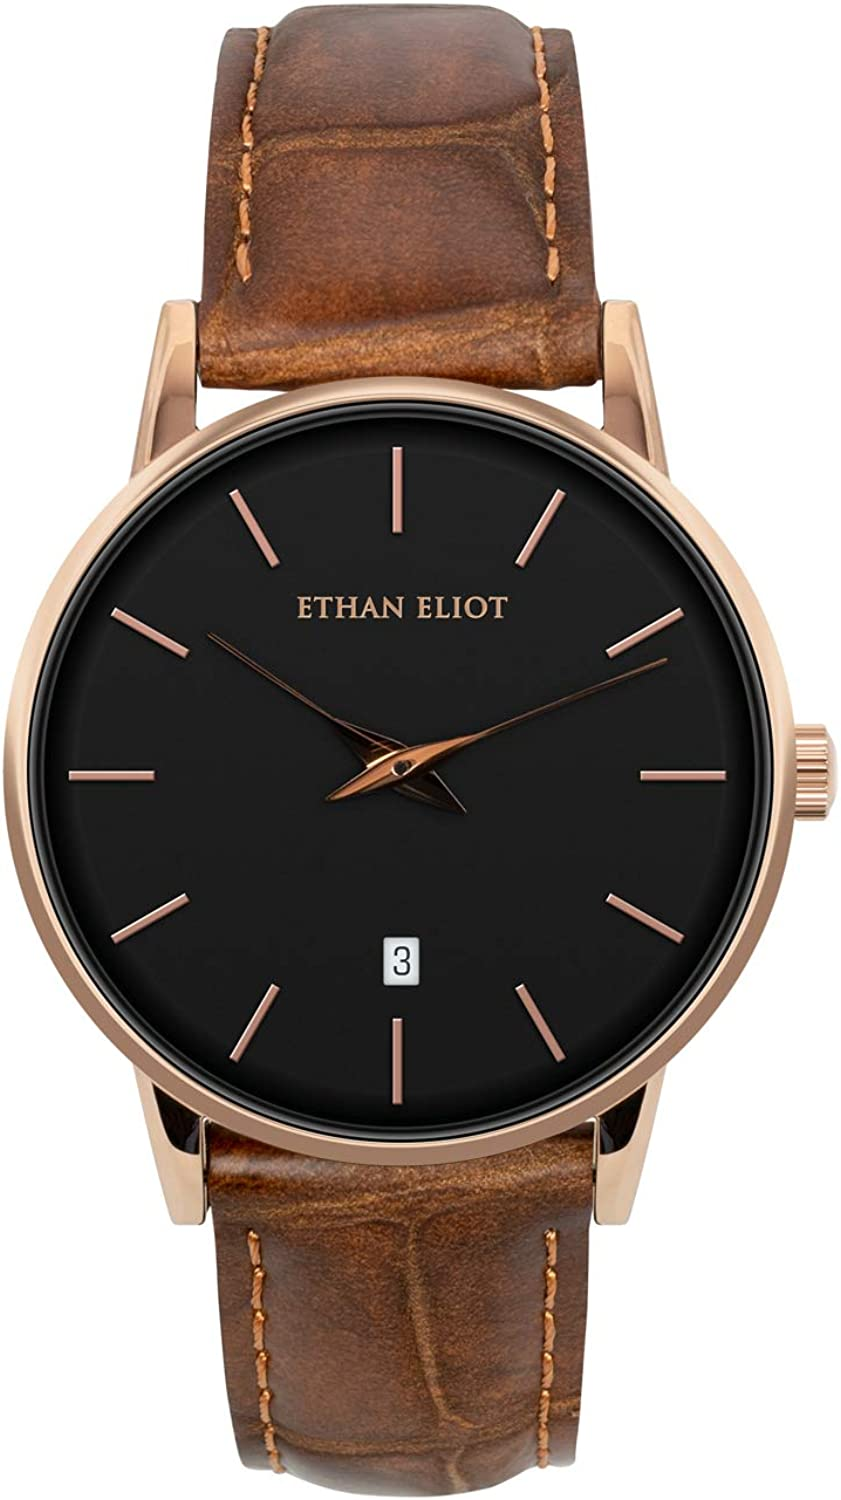 Ethan Eliot Classic Men s Watch, Women s Watch, Melrose 38mm Rose Gold Watch for Men Watch for Women Unisex with Date, Black Face 5ATM